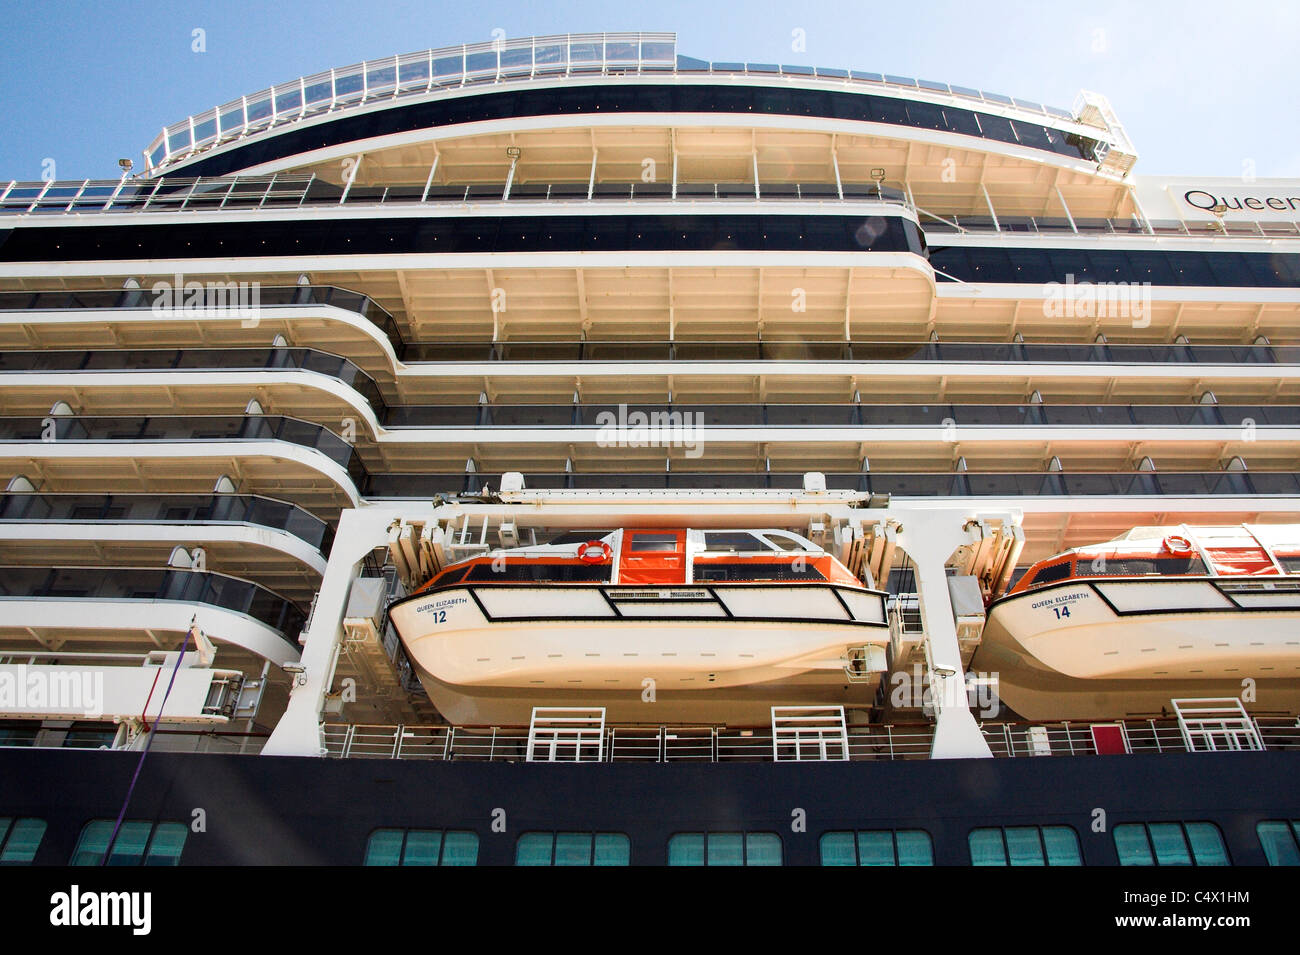 Lifeboats Cruise Ship MS Queen Elizabeth Copenhagen Denmark - Cruise ship copenhagen